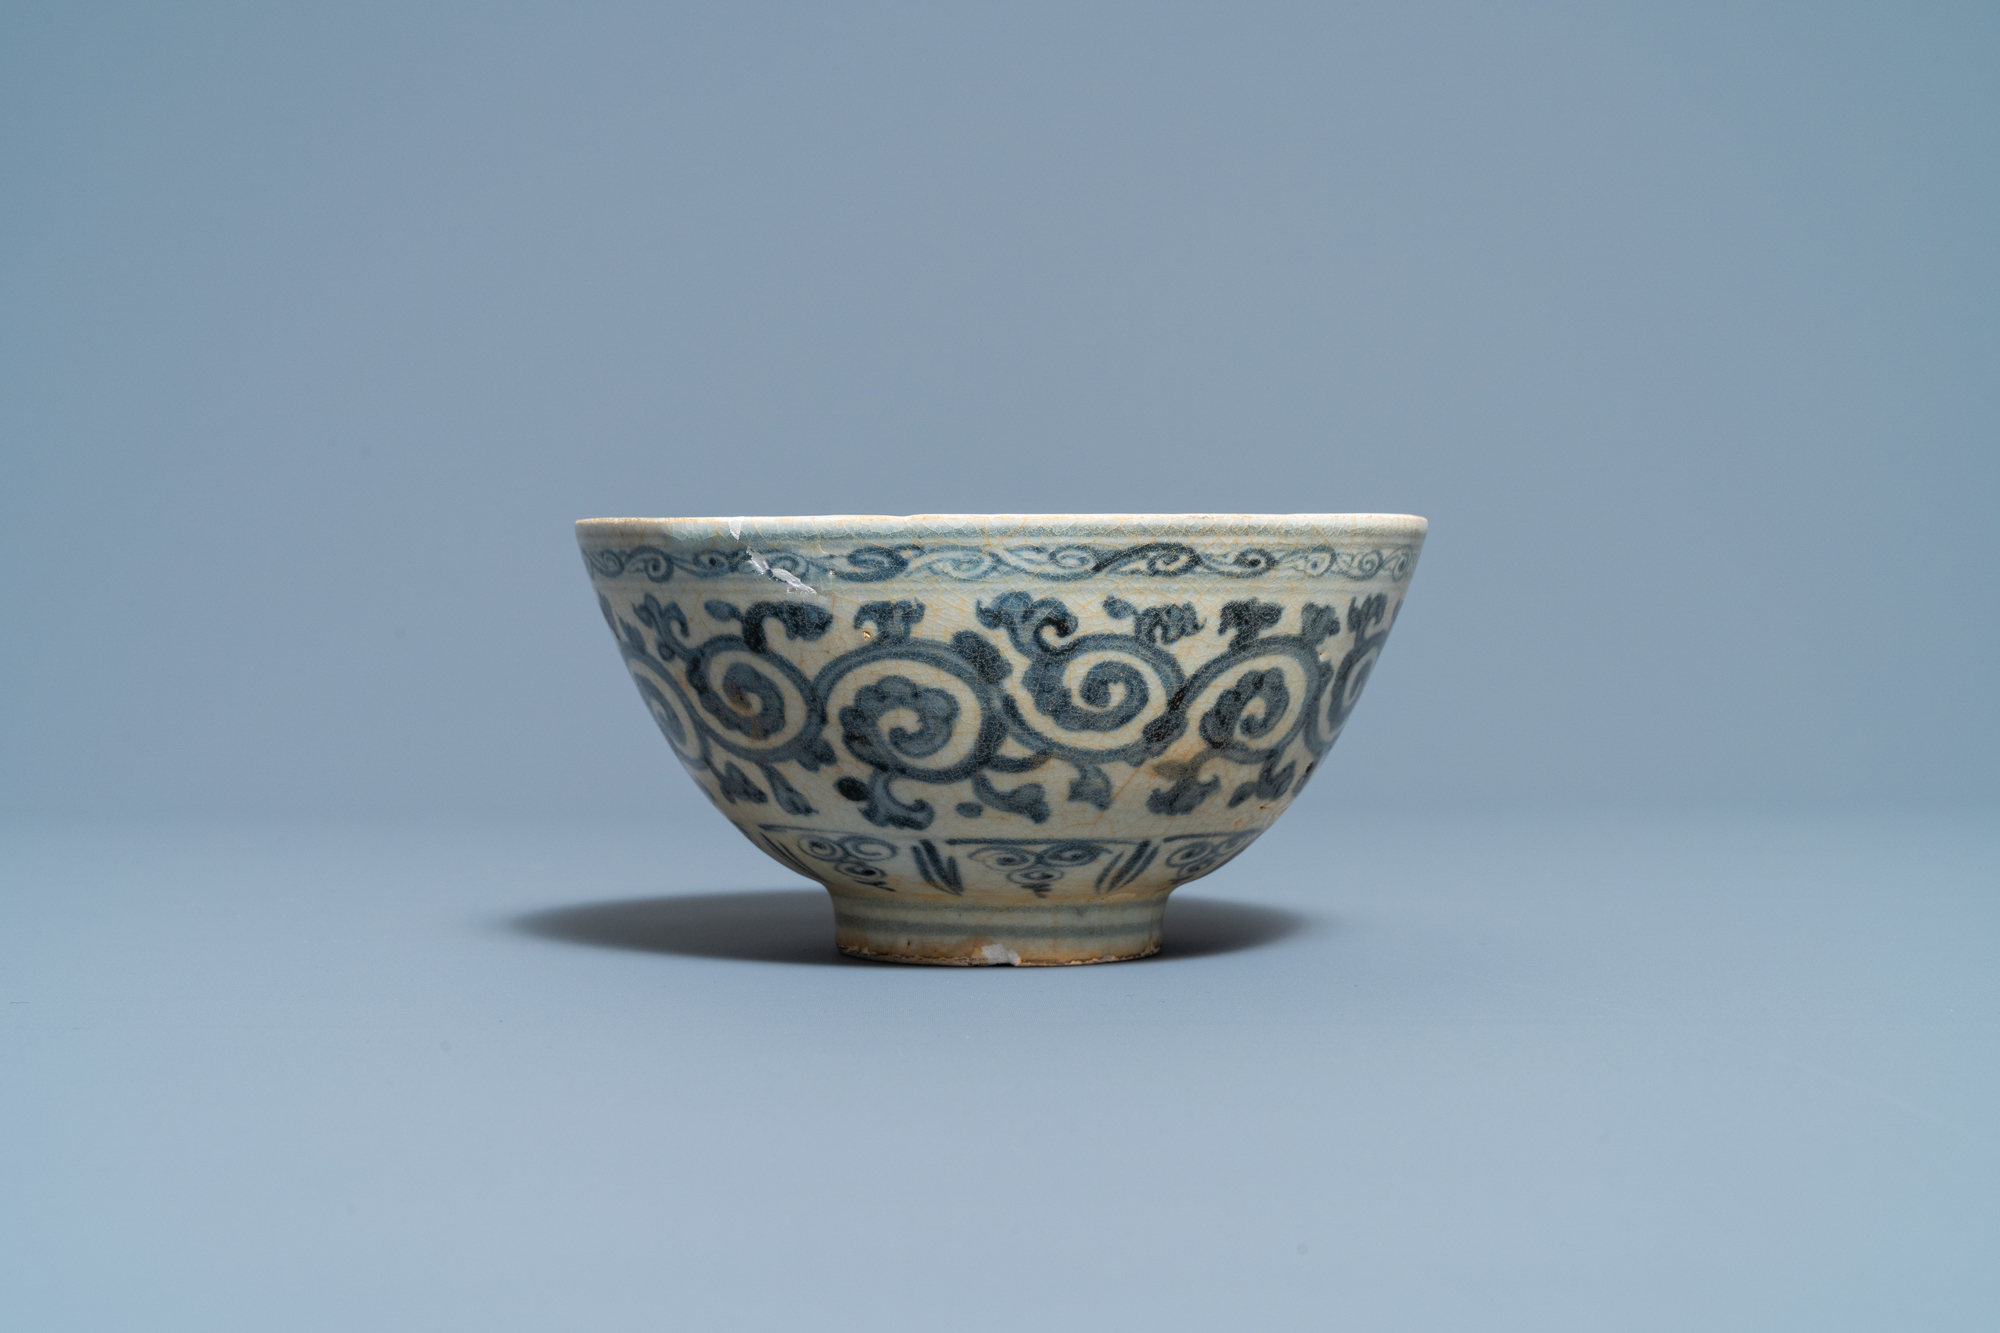 Four blue and white Vietnamese or Annamese ceramics and a Chinese jarlet, 15/16th C. - Image 2 of 12